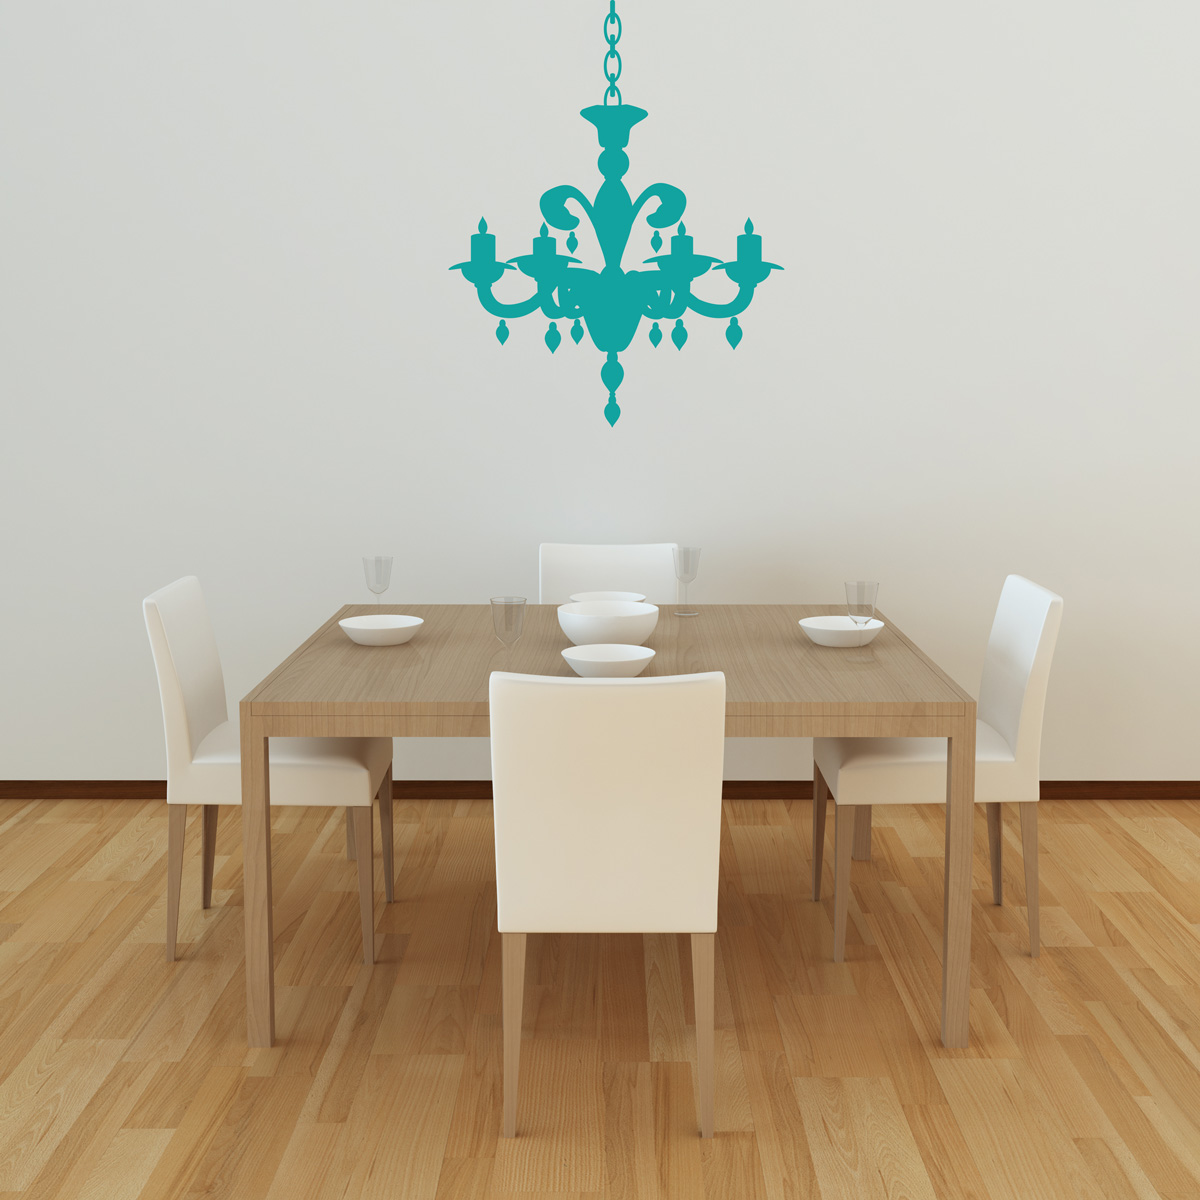 Chandelier Wall Decal Style 7